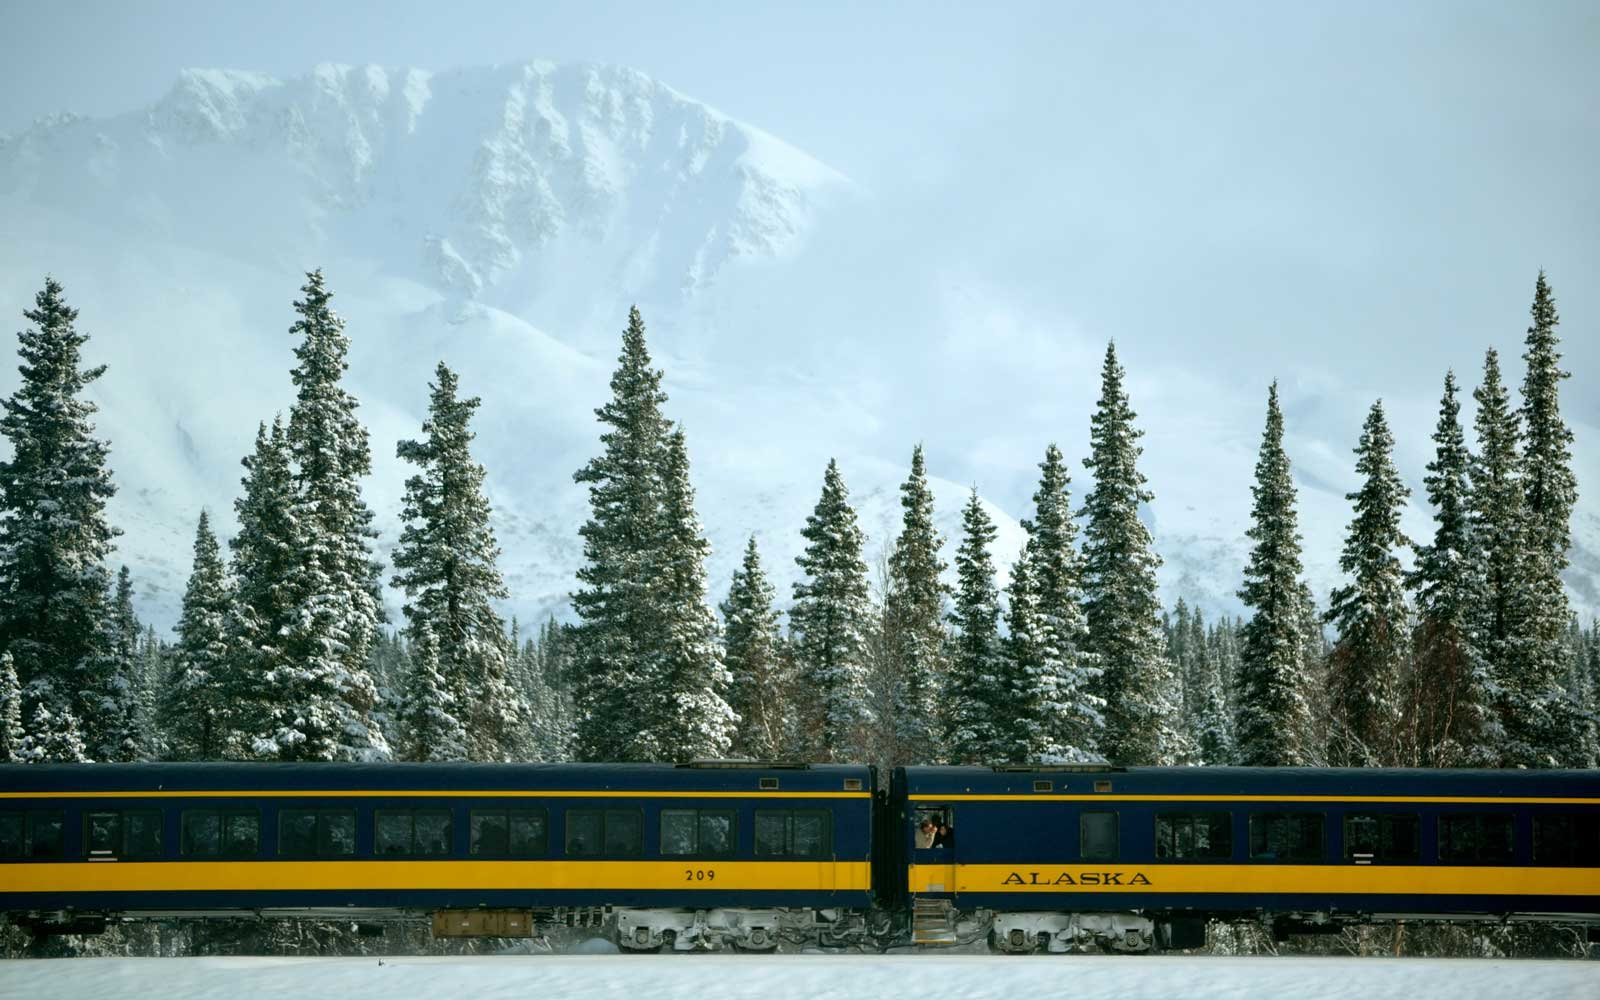 Aurora Winter Train in Alaska